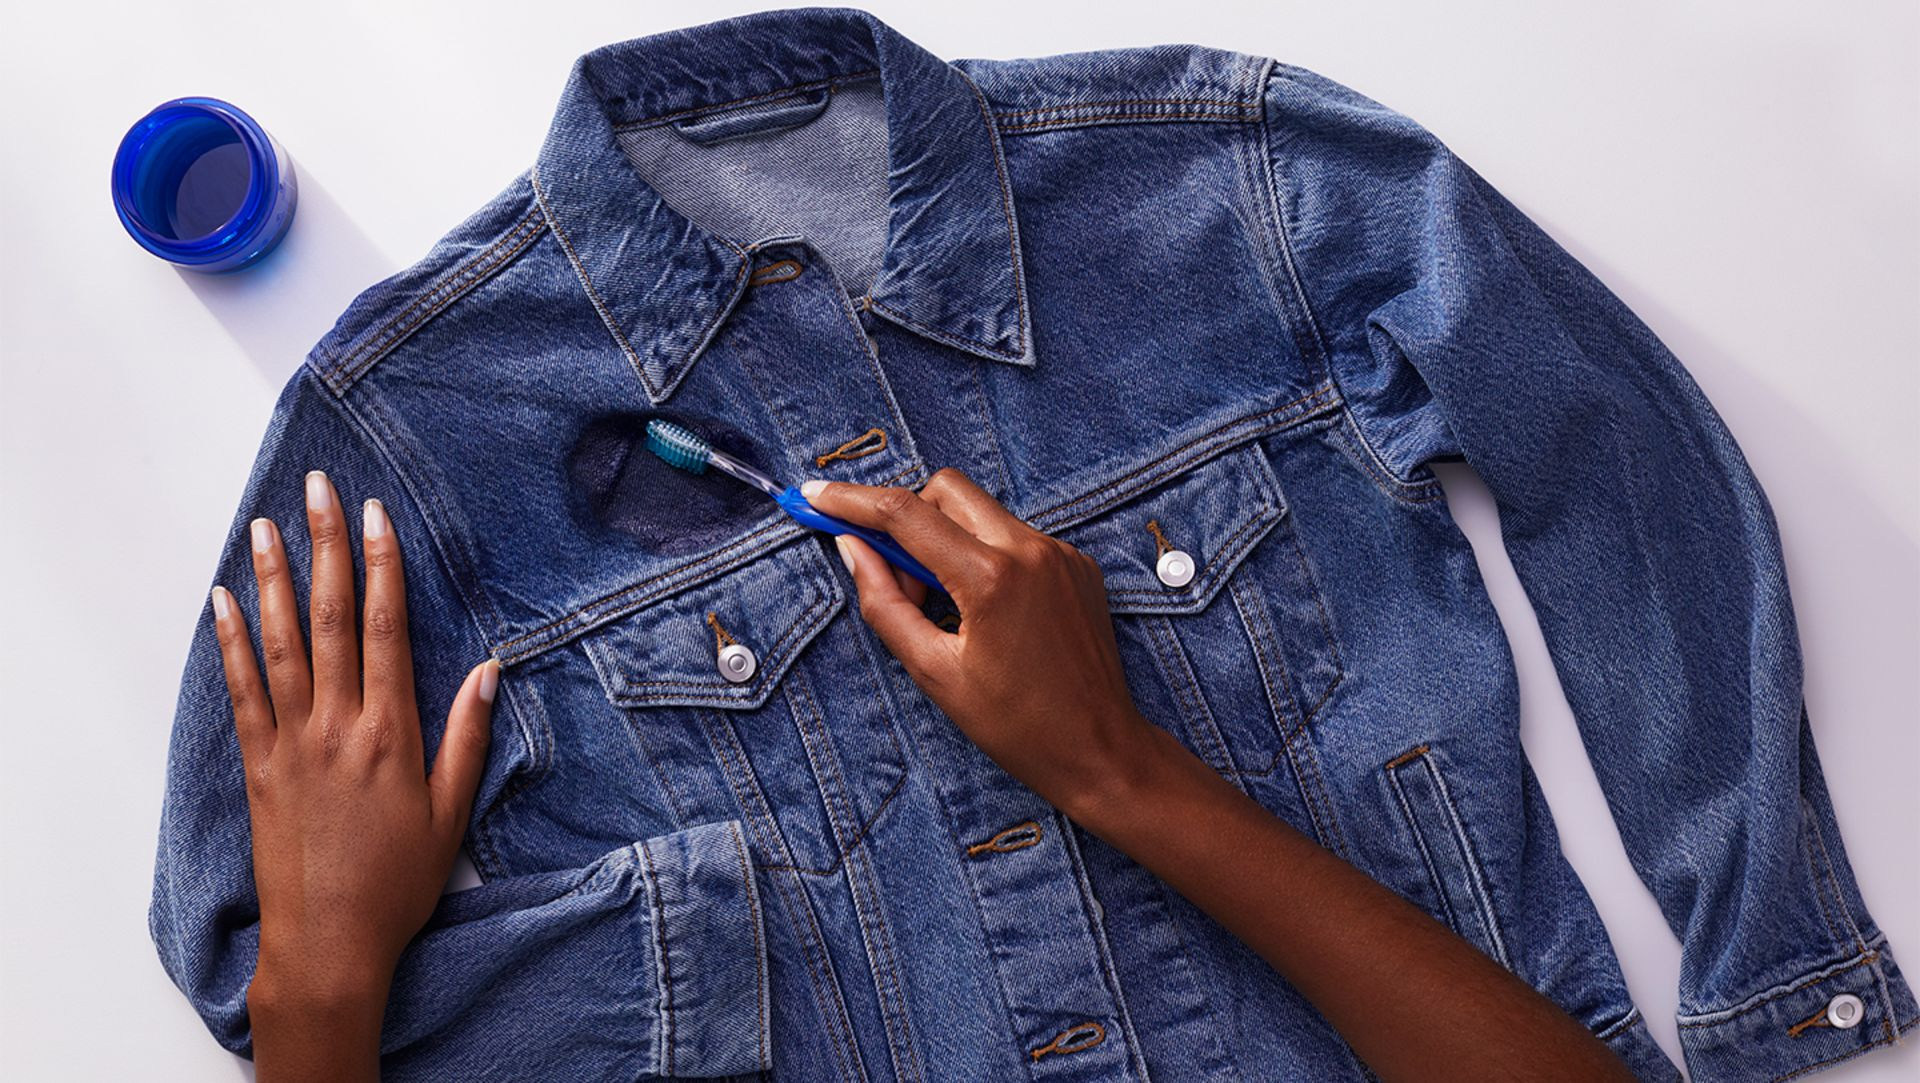 A person pretreating a denim jacket with Tide liquid laundry detergent and a toothbrush